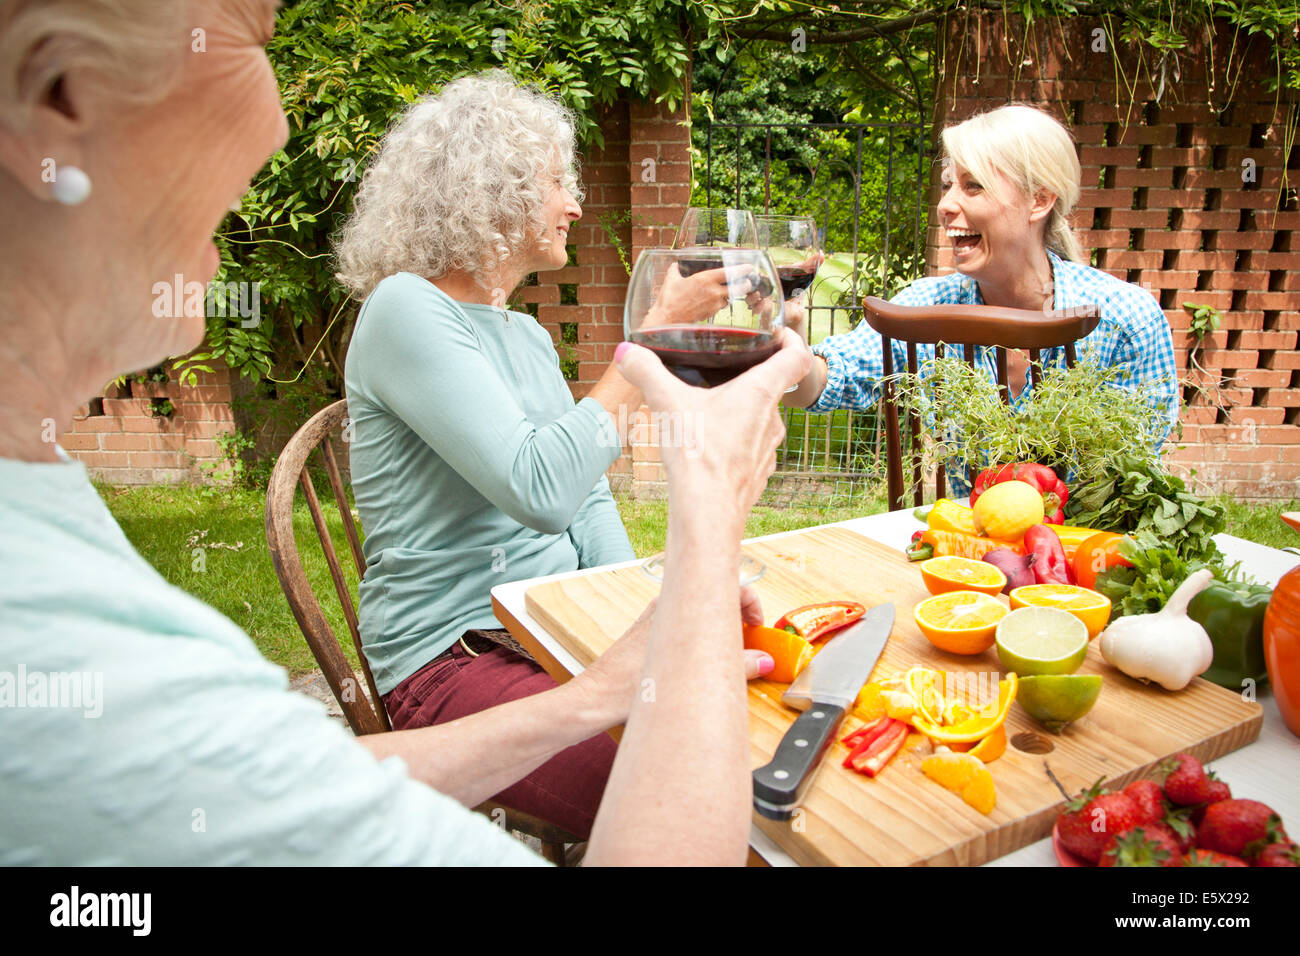 Three generation women raising a glass of red wine while preparing food at garden table - Stock Image